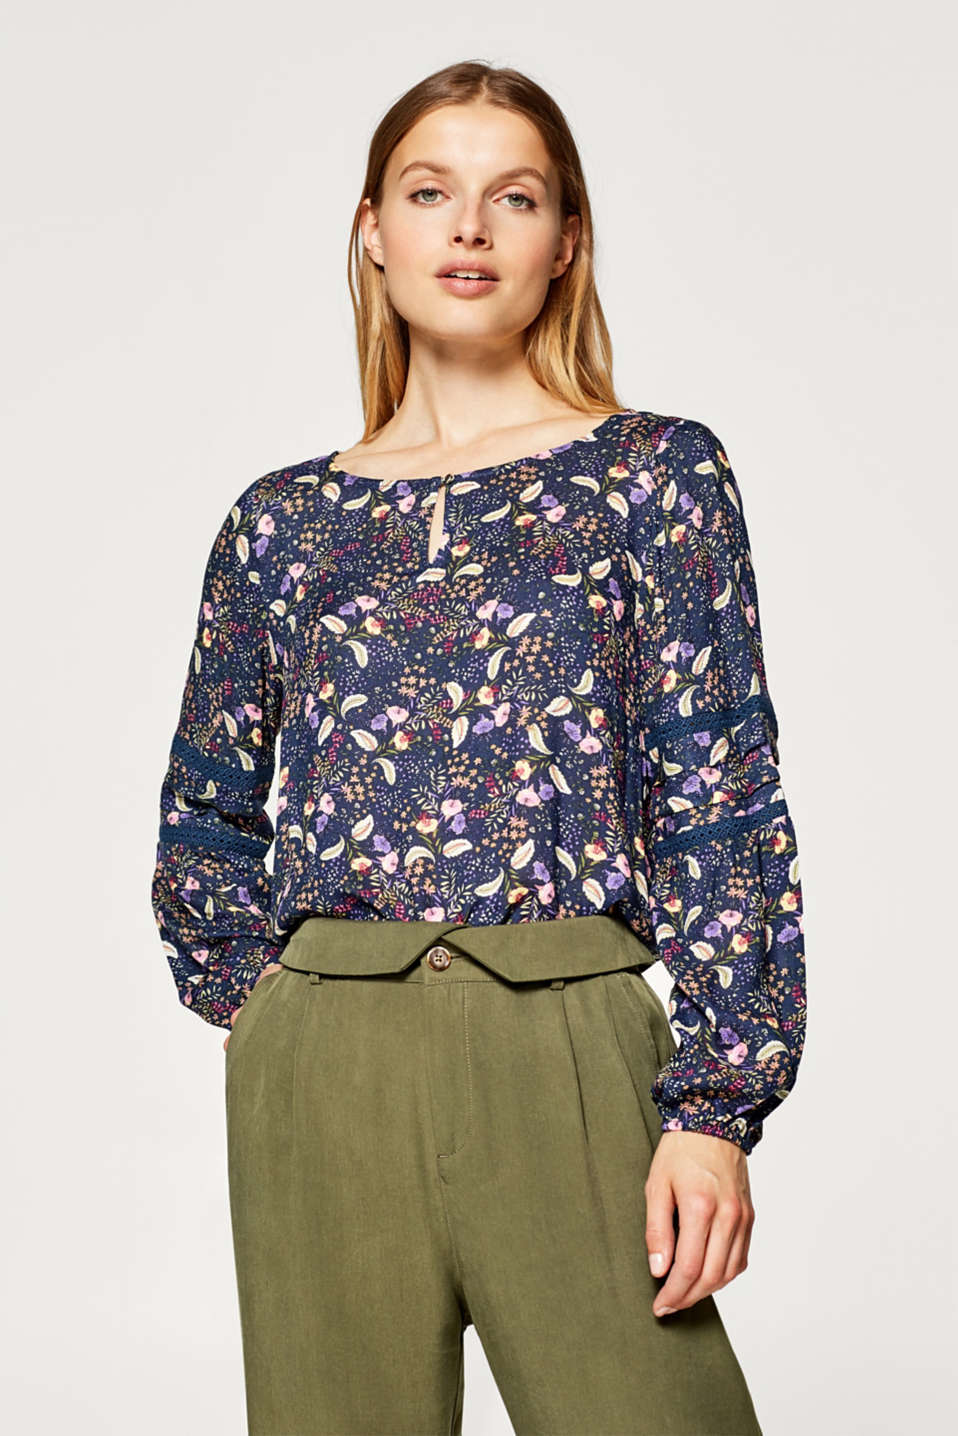 Esprit - Printed blouse with lace details